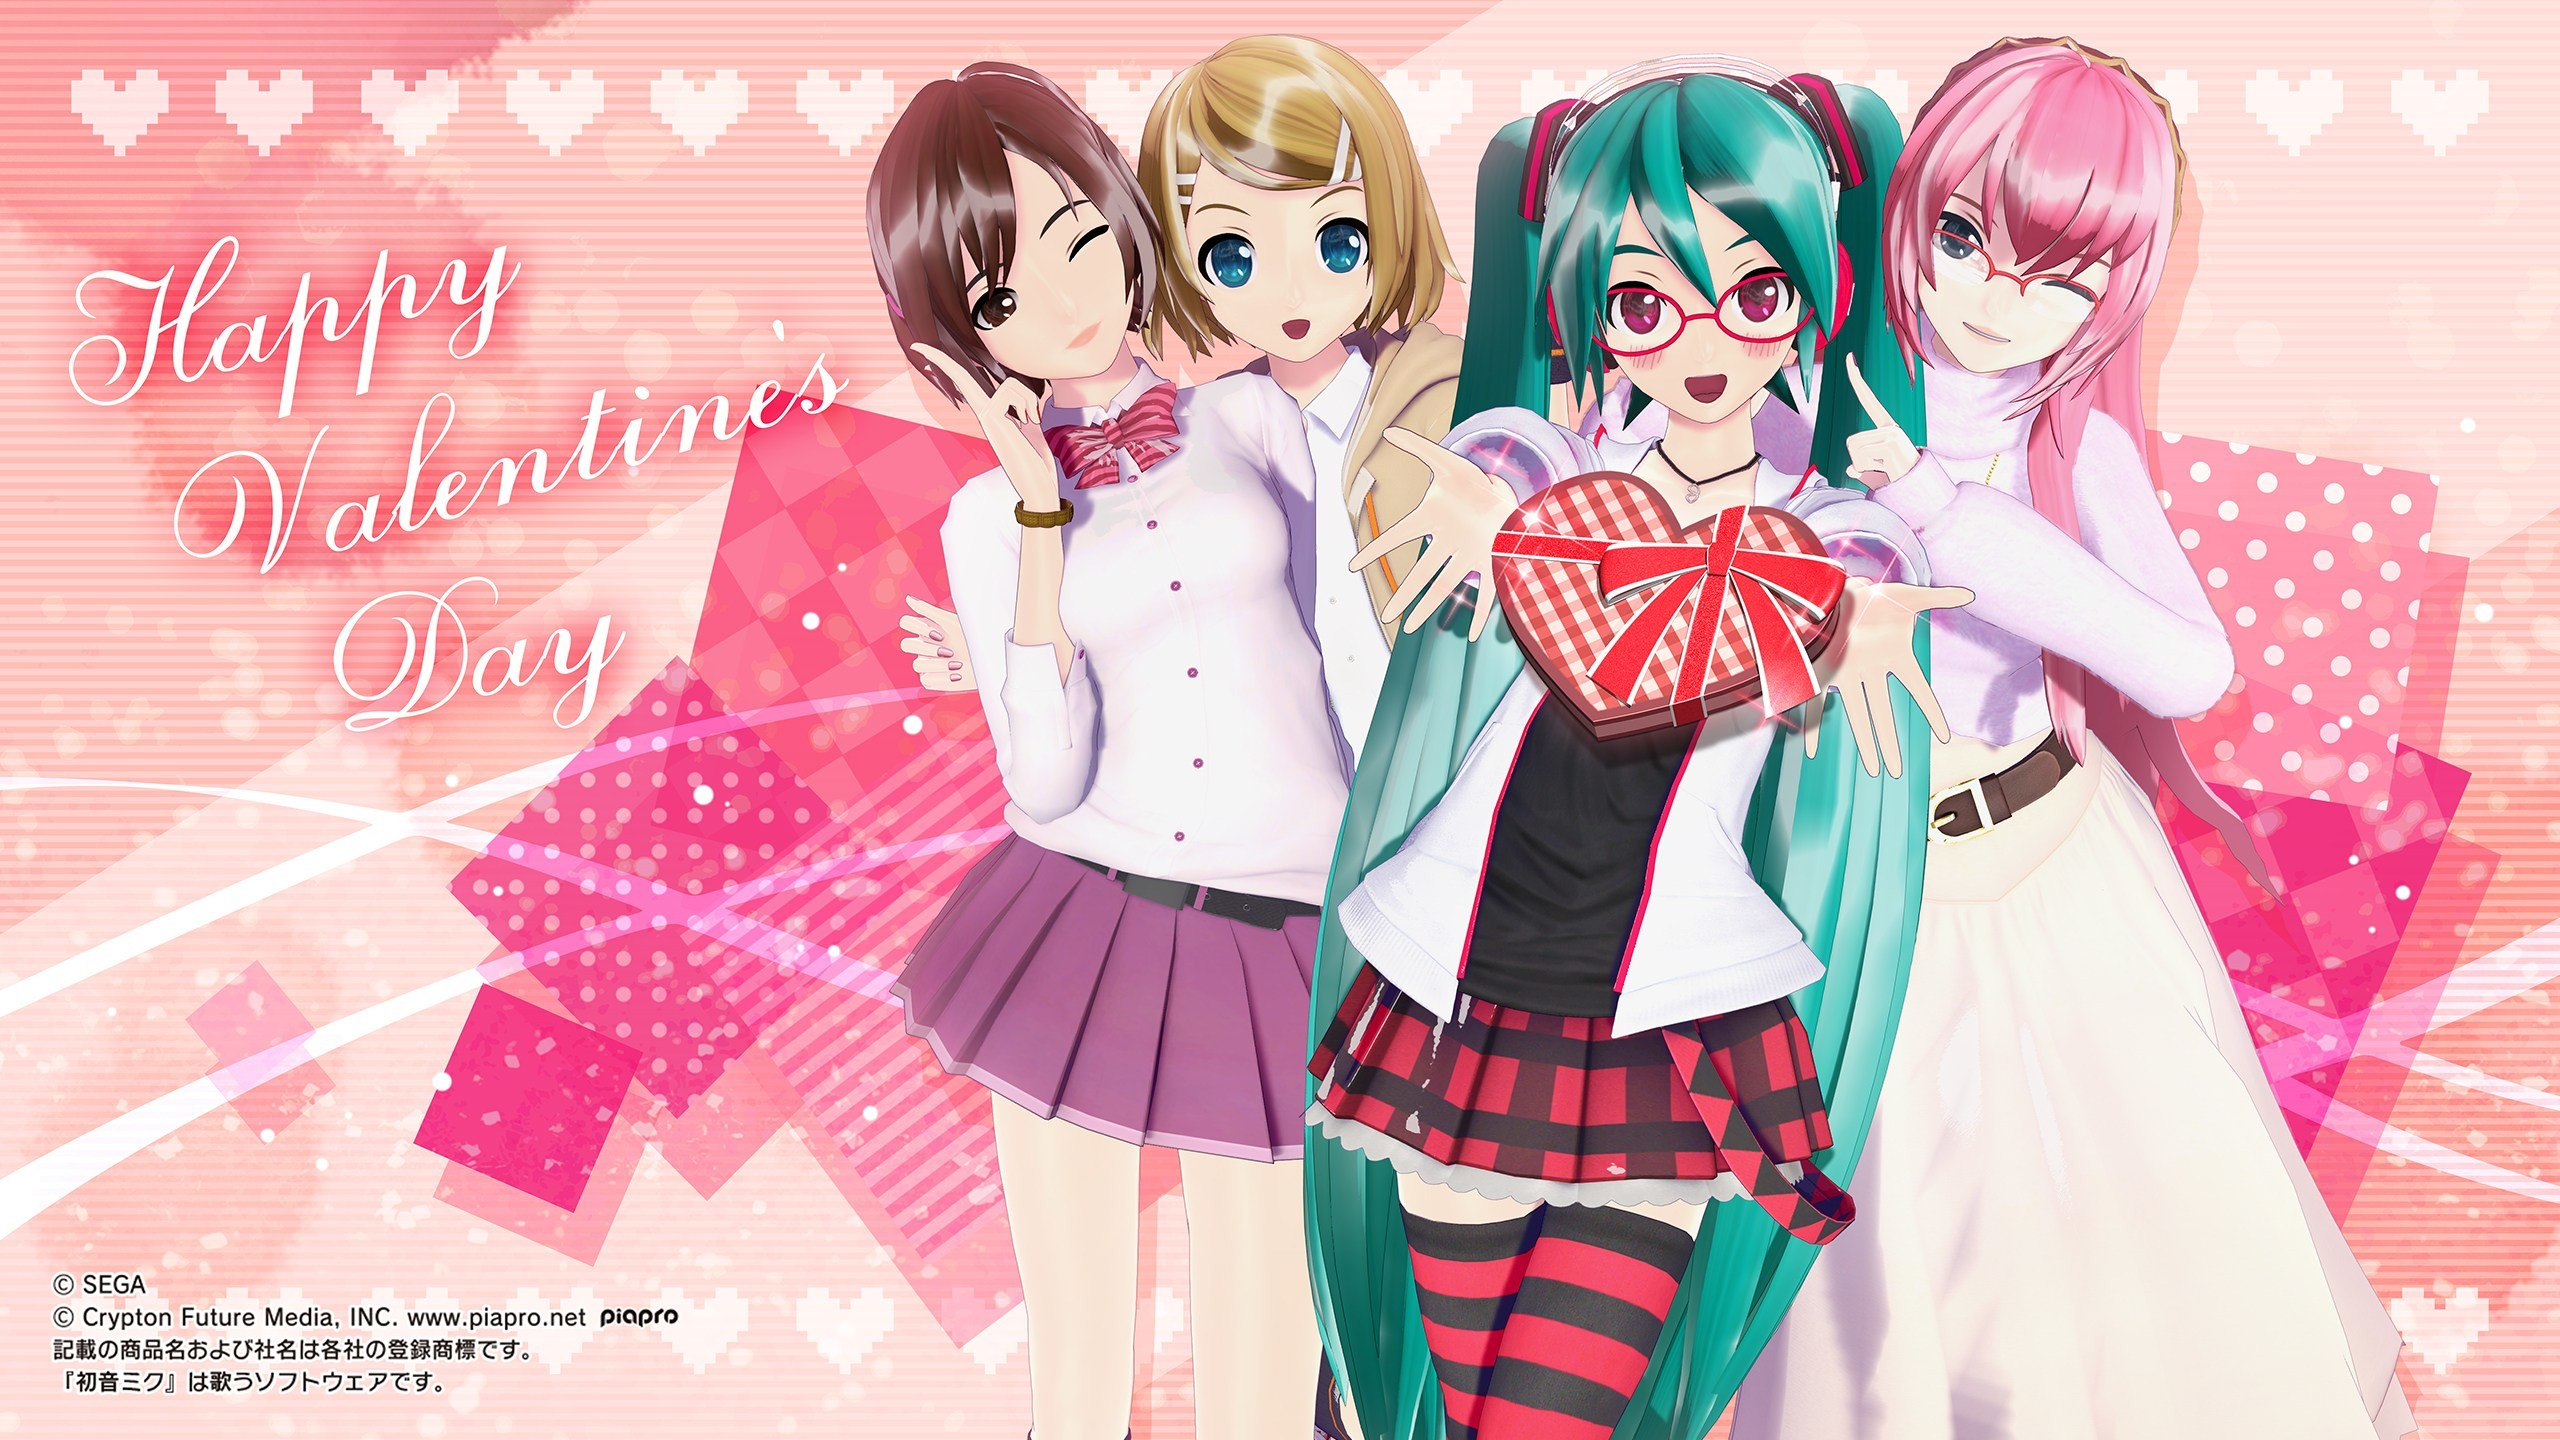 Project DIVA Team Celebrates Valentine's Day With Project DIVA X Video and  Wallpaper